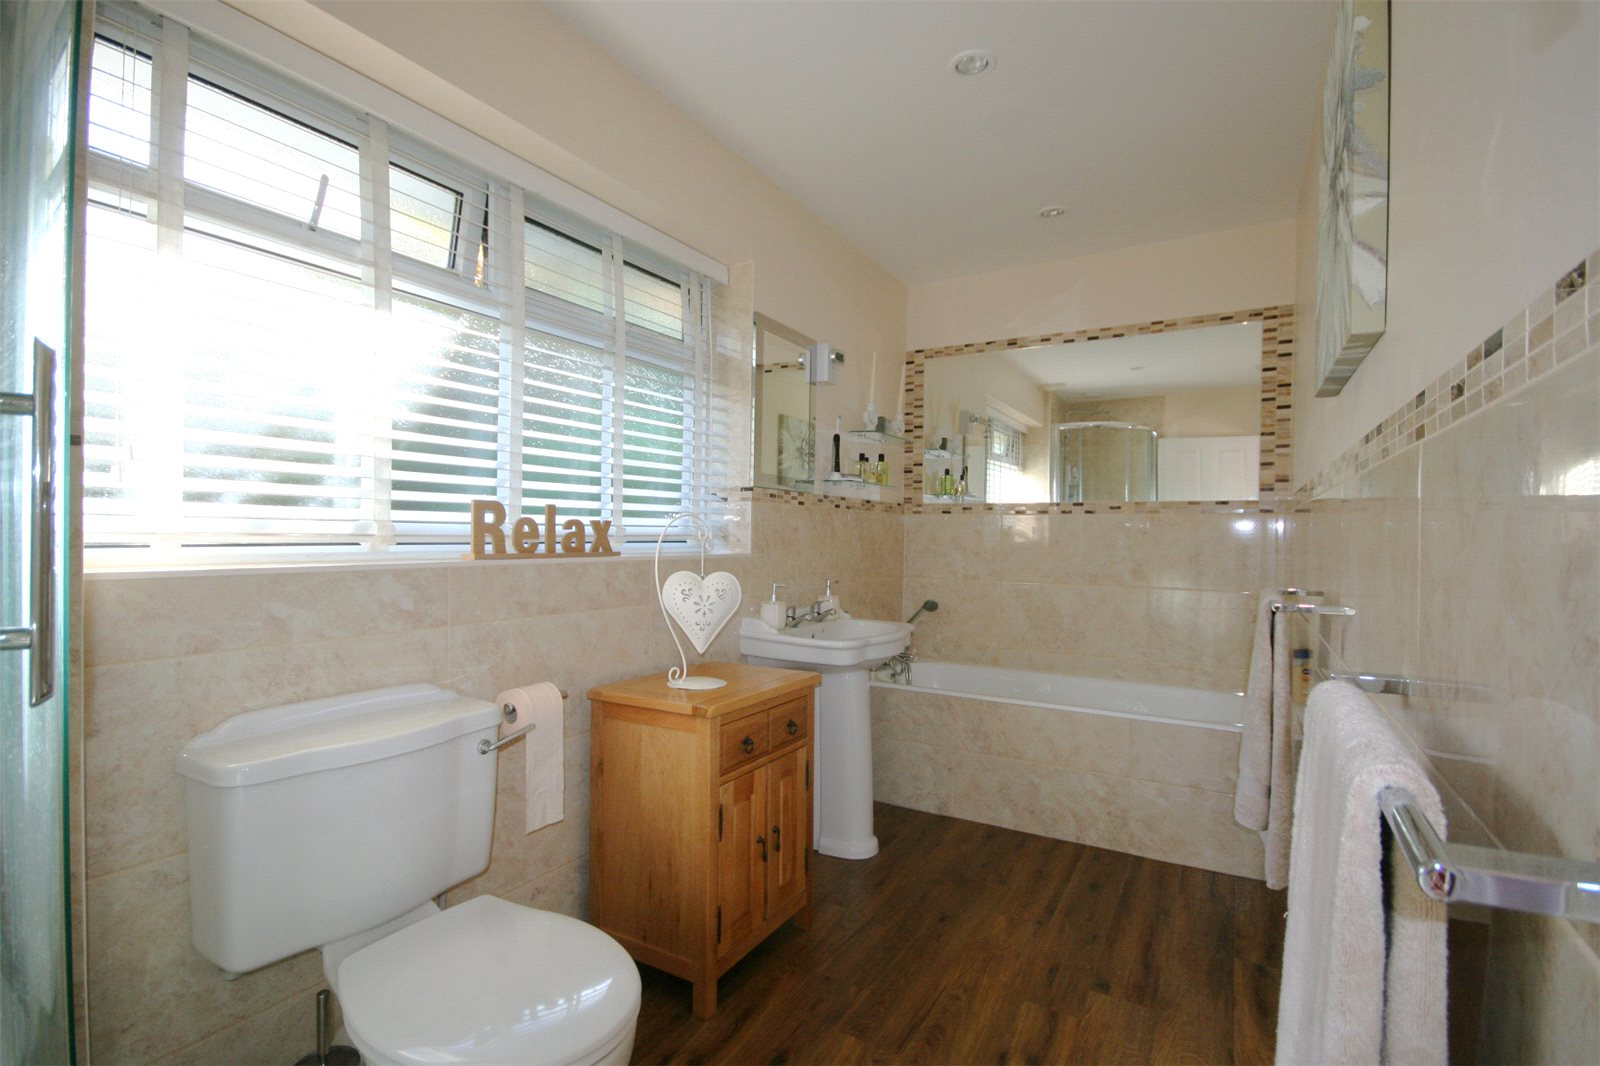 Additional photo for property listing at Denham Lane, Chalfont St Peter, Buckinghamshire, SL9 Chalfont St Peter, 英格兰